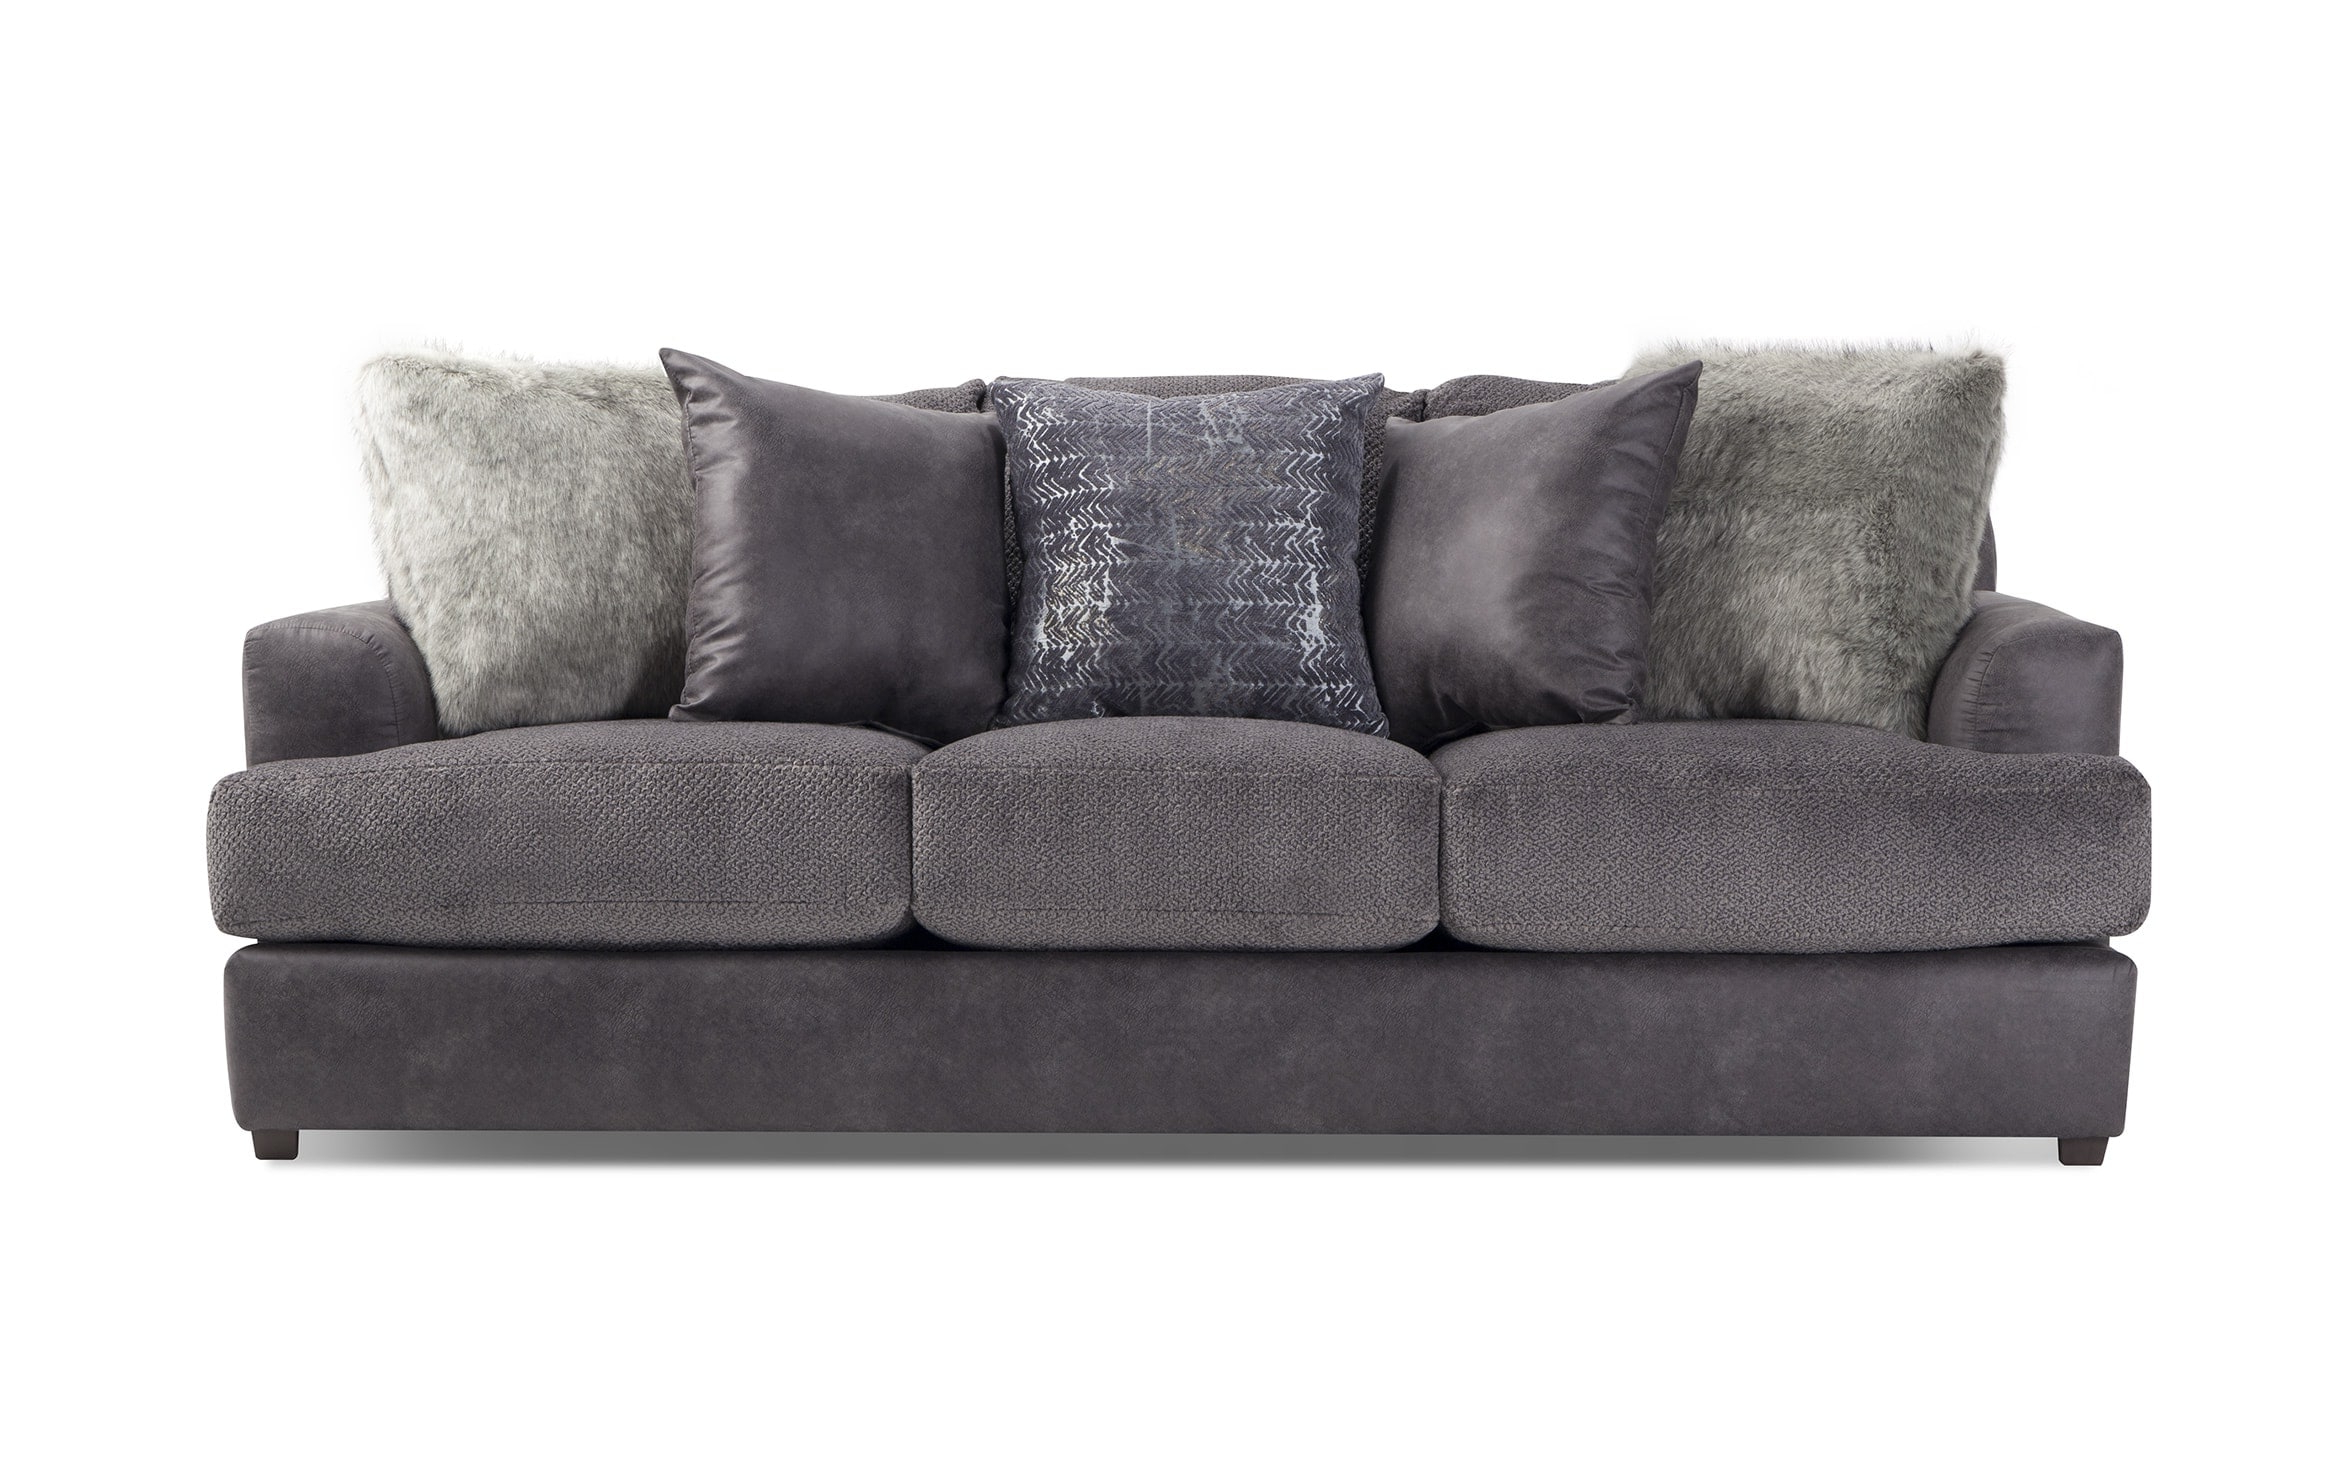 Dream Navy 3 Piece Modular Sofas Throughout Fashionable Bobs Sofa Playscape Denim Left Arm Facing Sectional Bobs (View 6 of 15)